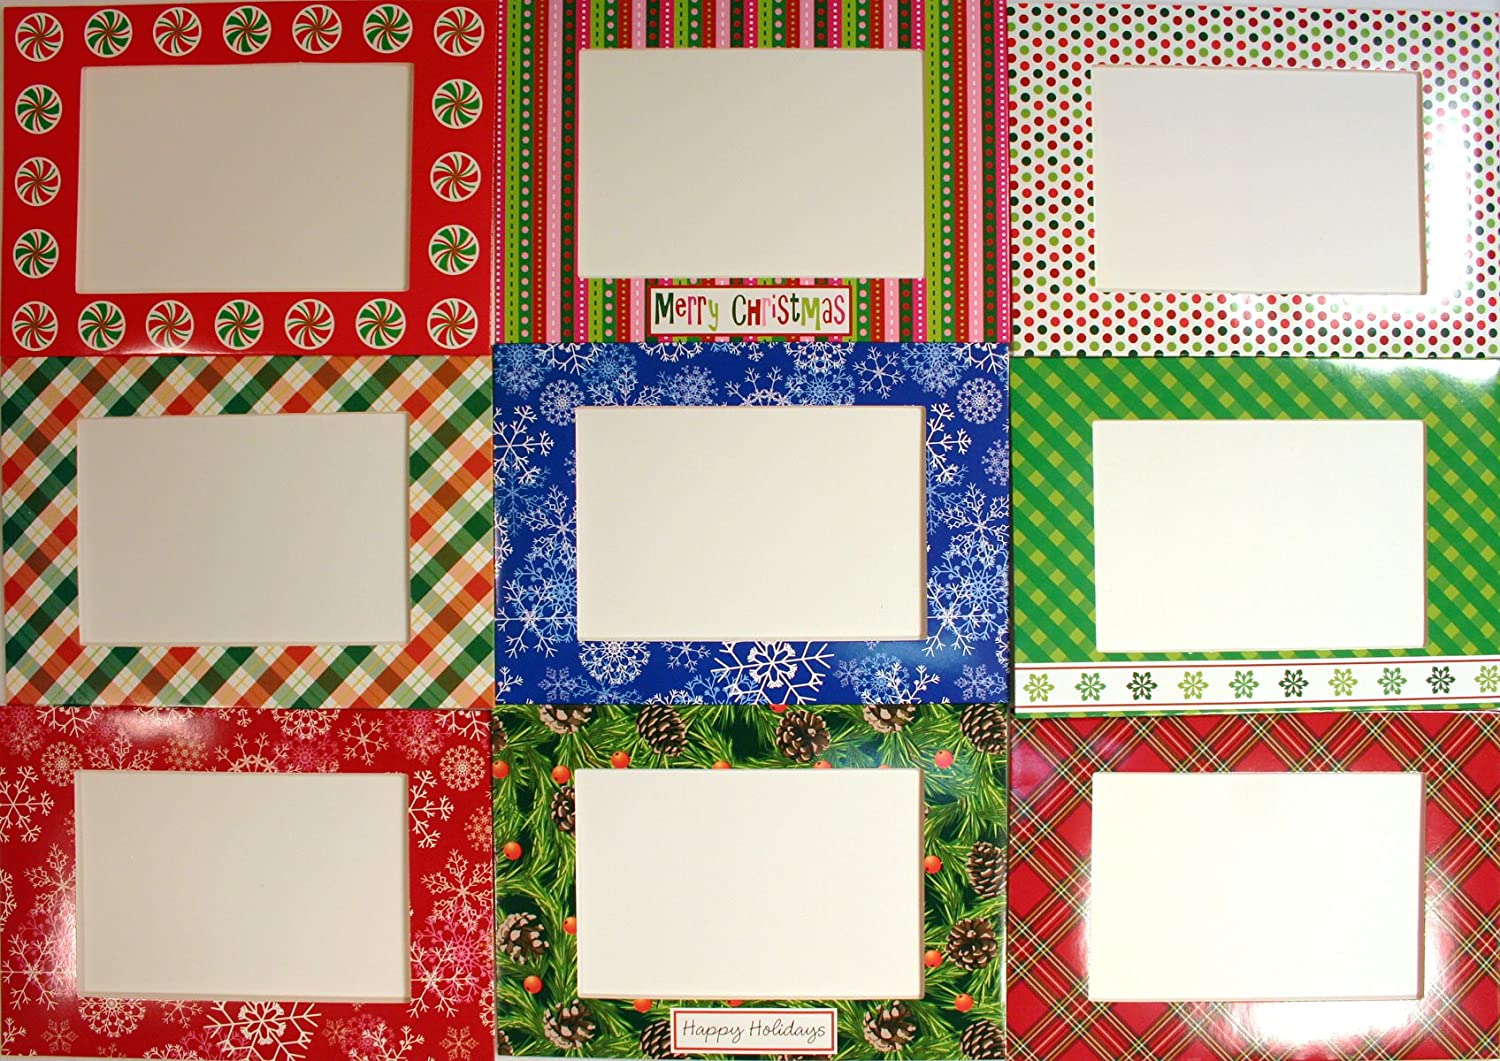 Amazon photo pocket frame holiday cards with envelopes blank amazon photo pocket frame holiday cards with envelopes blank inside box of 24 christmas cards holiday cards greeting cards cards health kristyandbryce Images